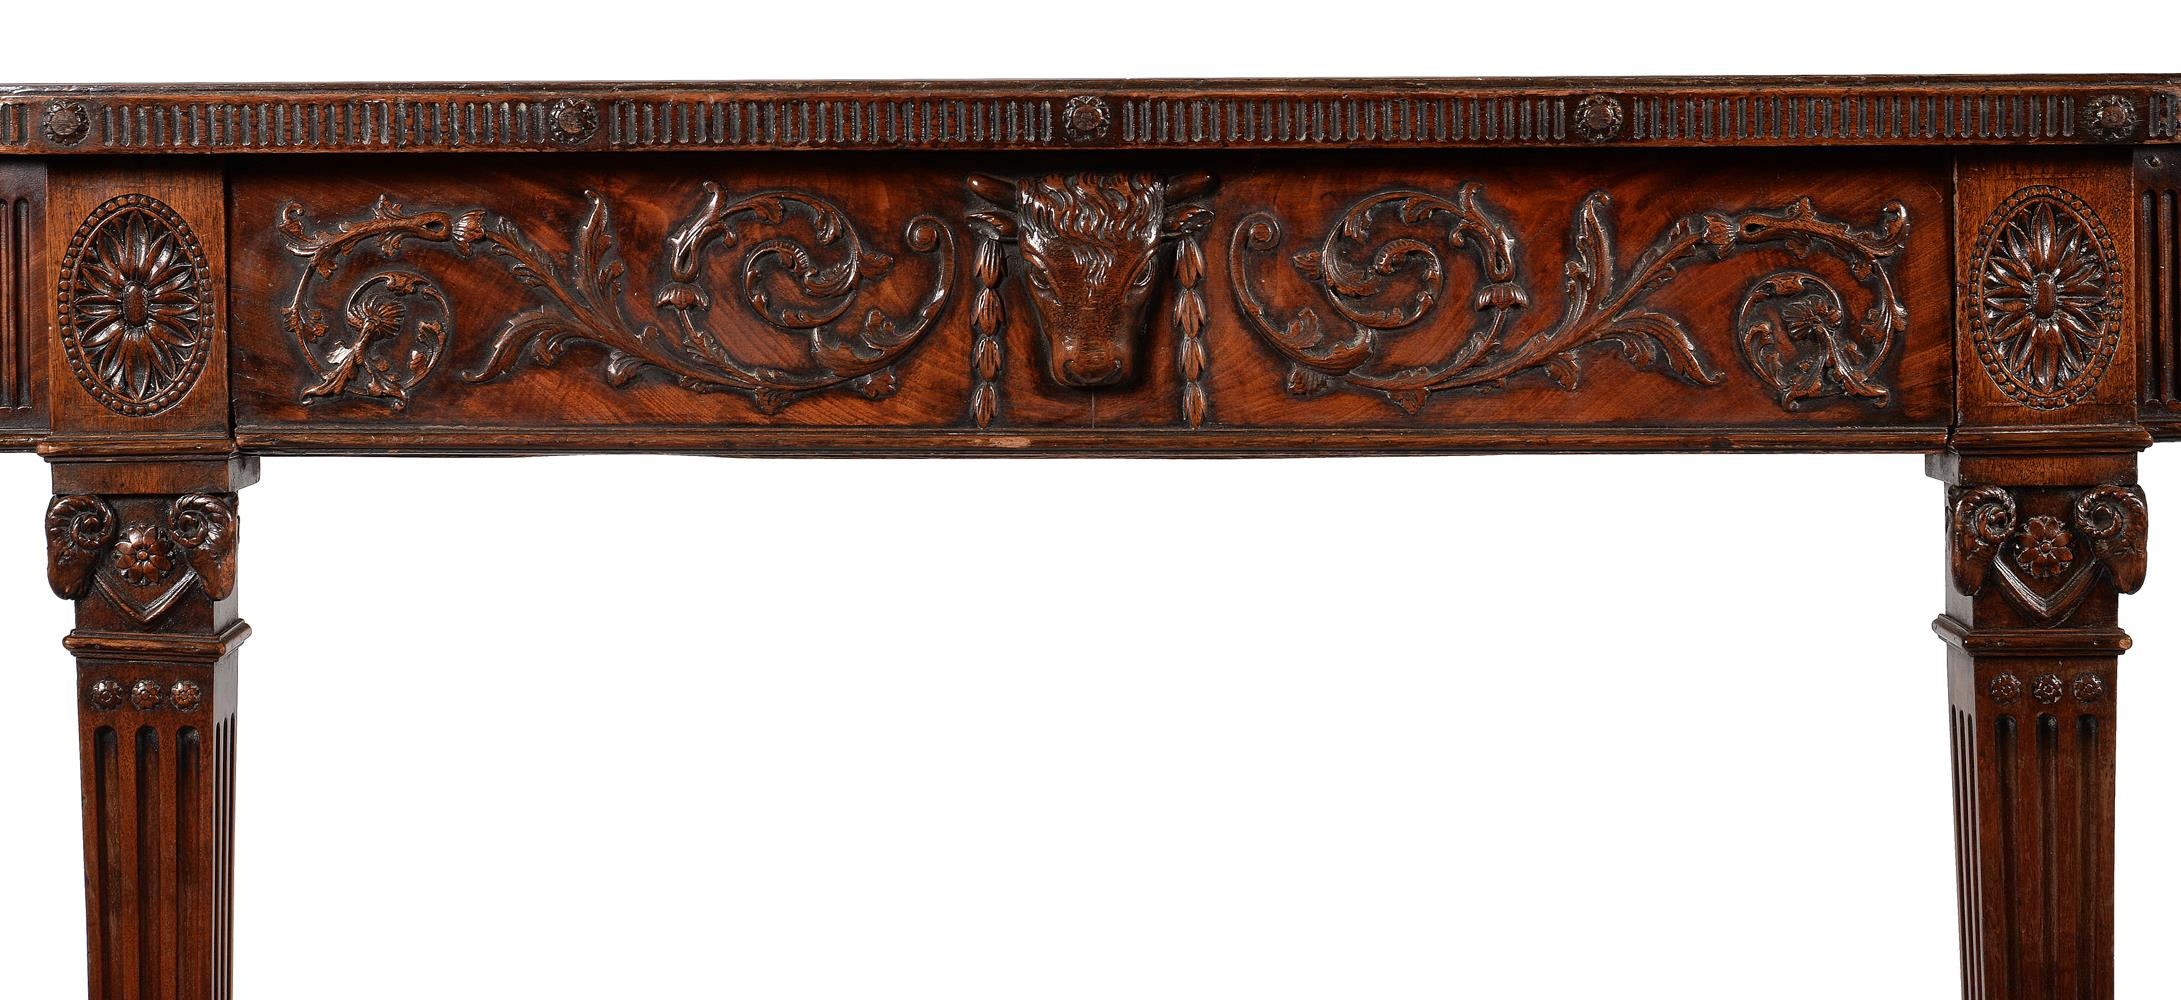 A GEORGE III MAHOGANY SERVING OR HALL TABLE, CIRCA 1785 - Image 5 of 6